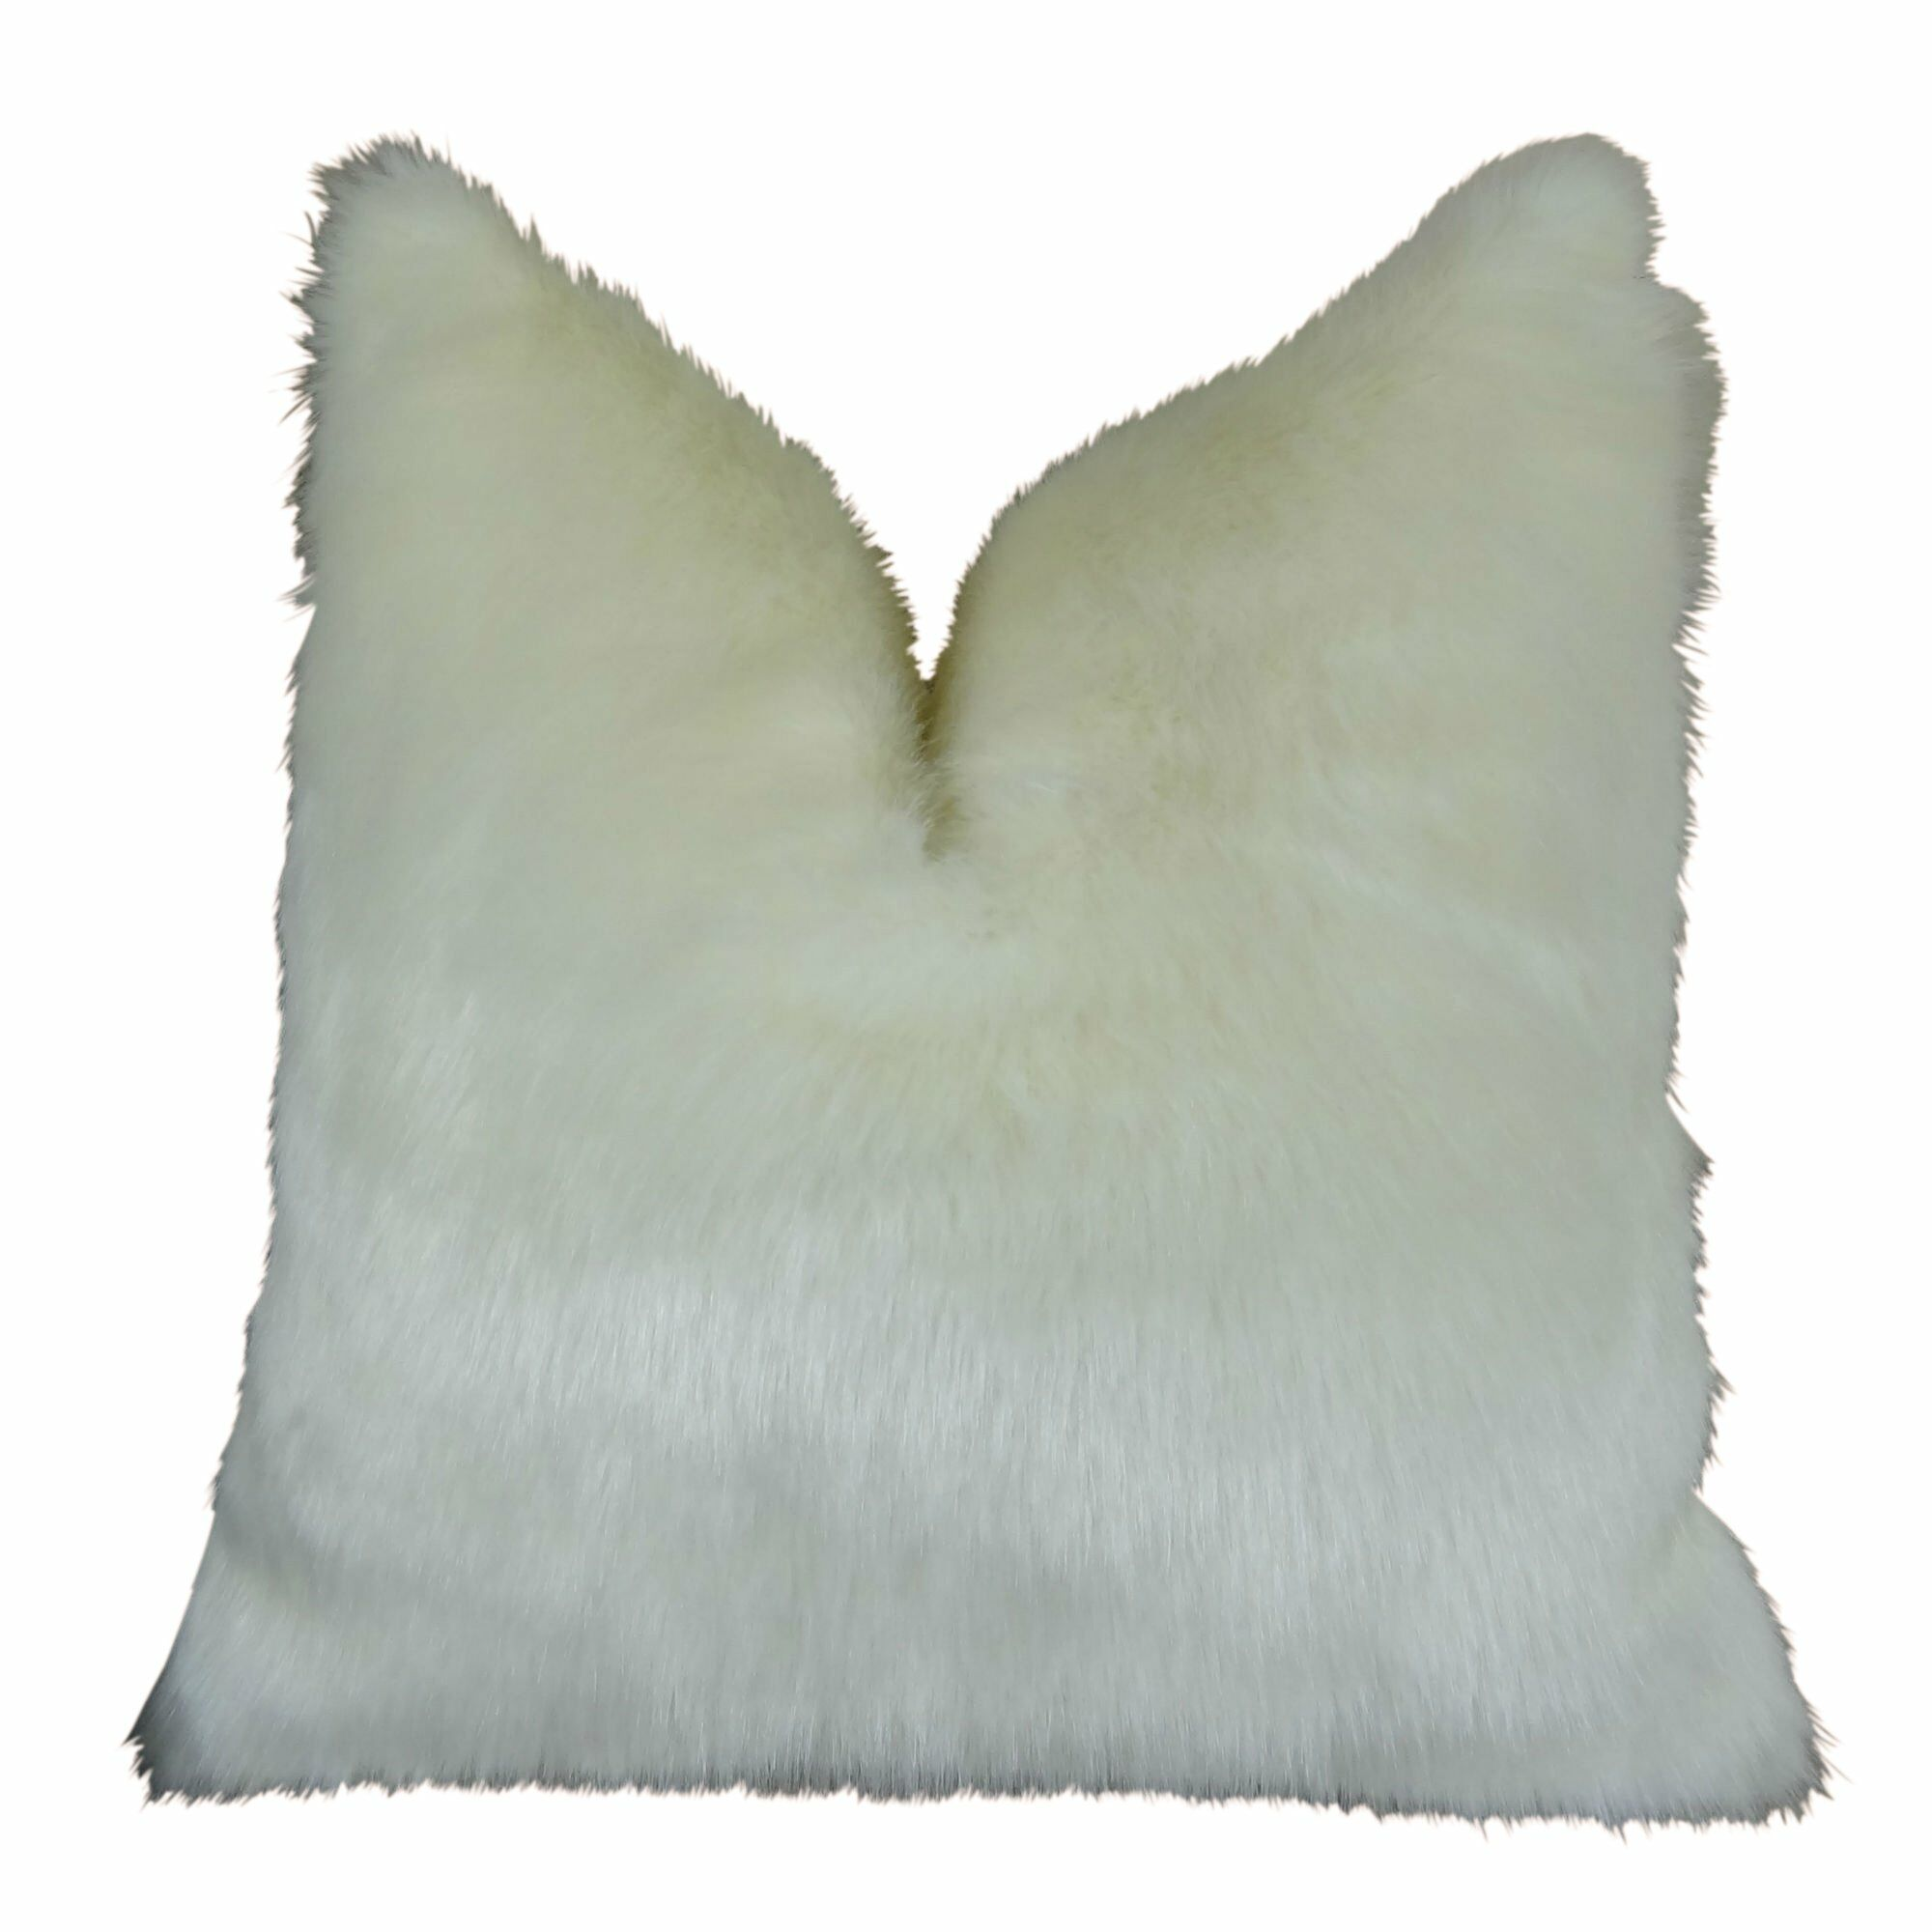 Jourdan Mink Faux Fur Pillow Size: 20